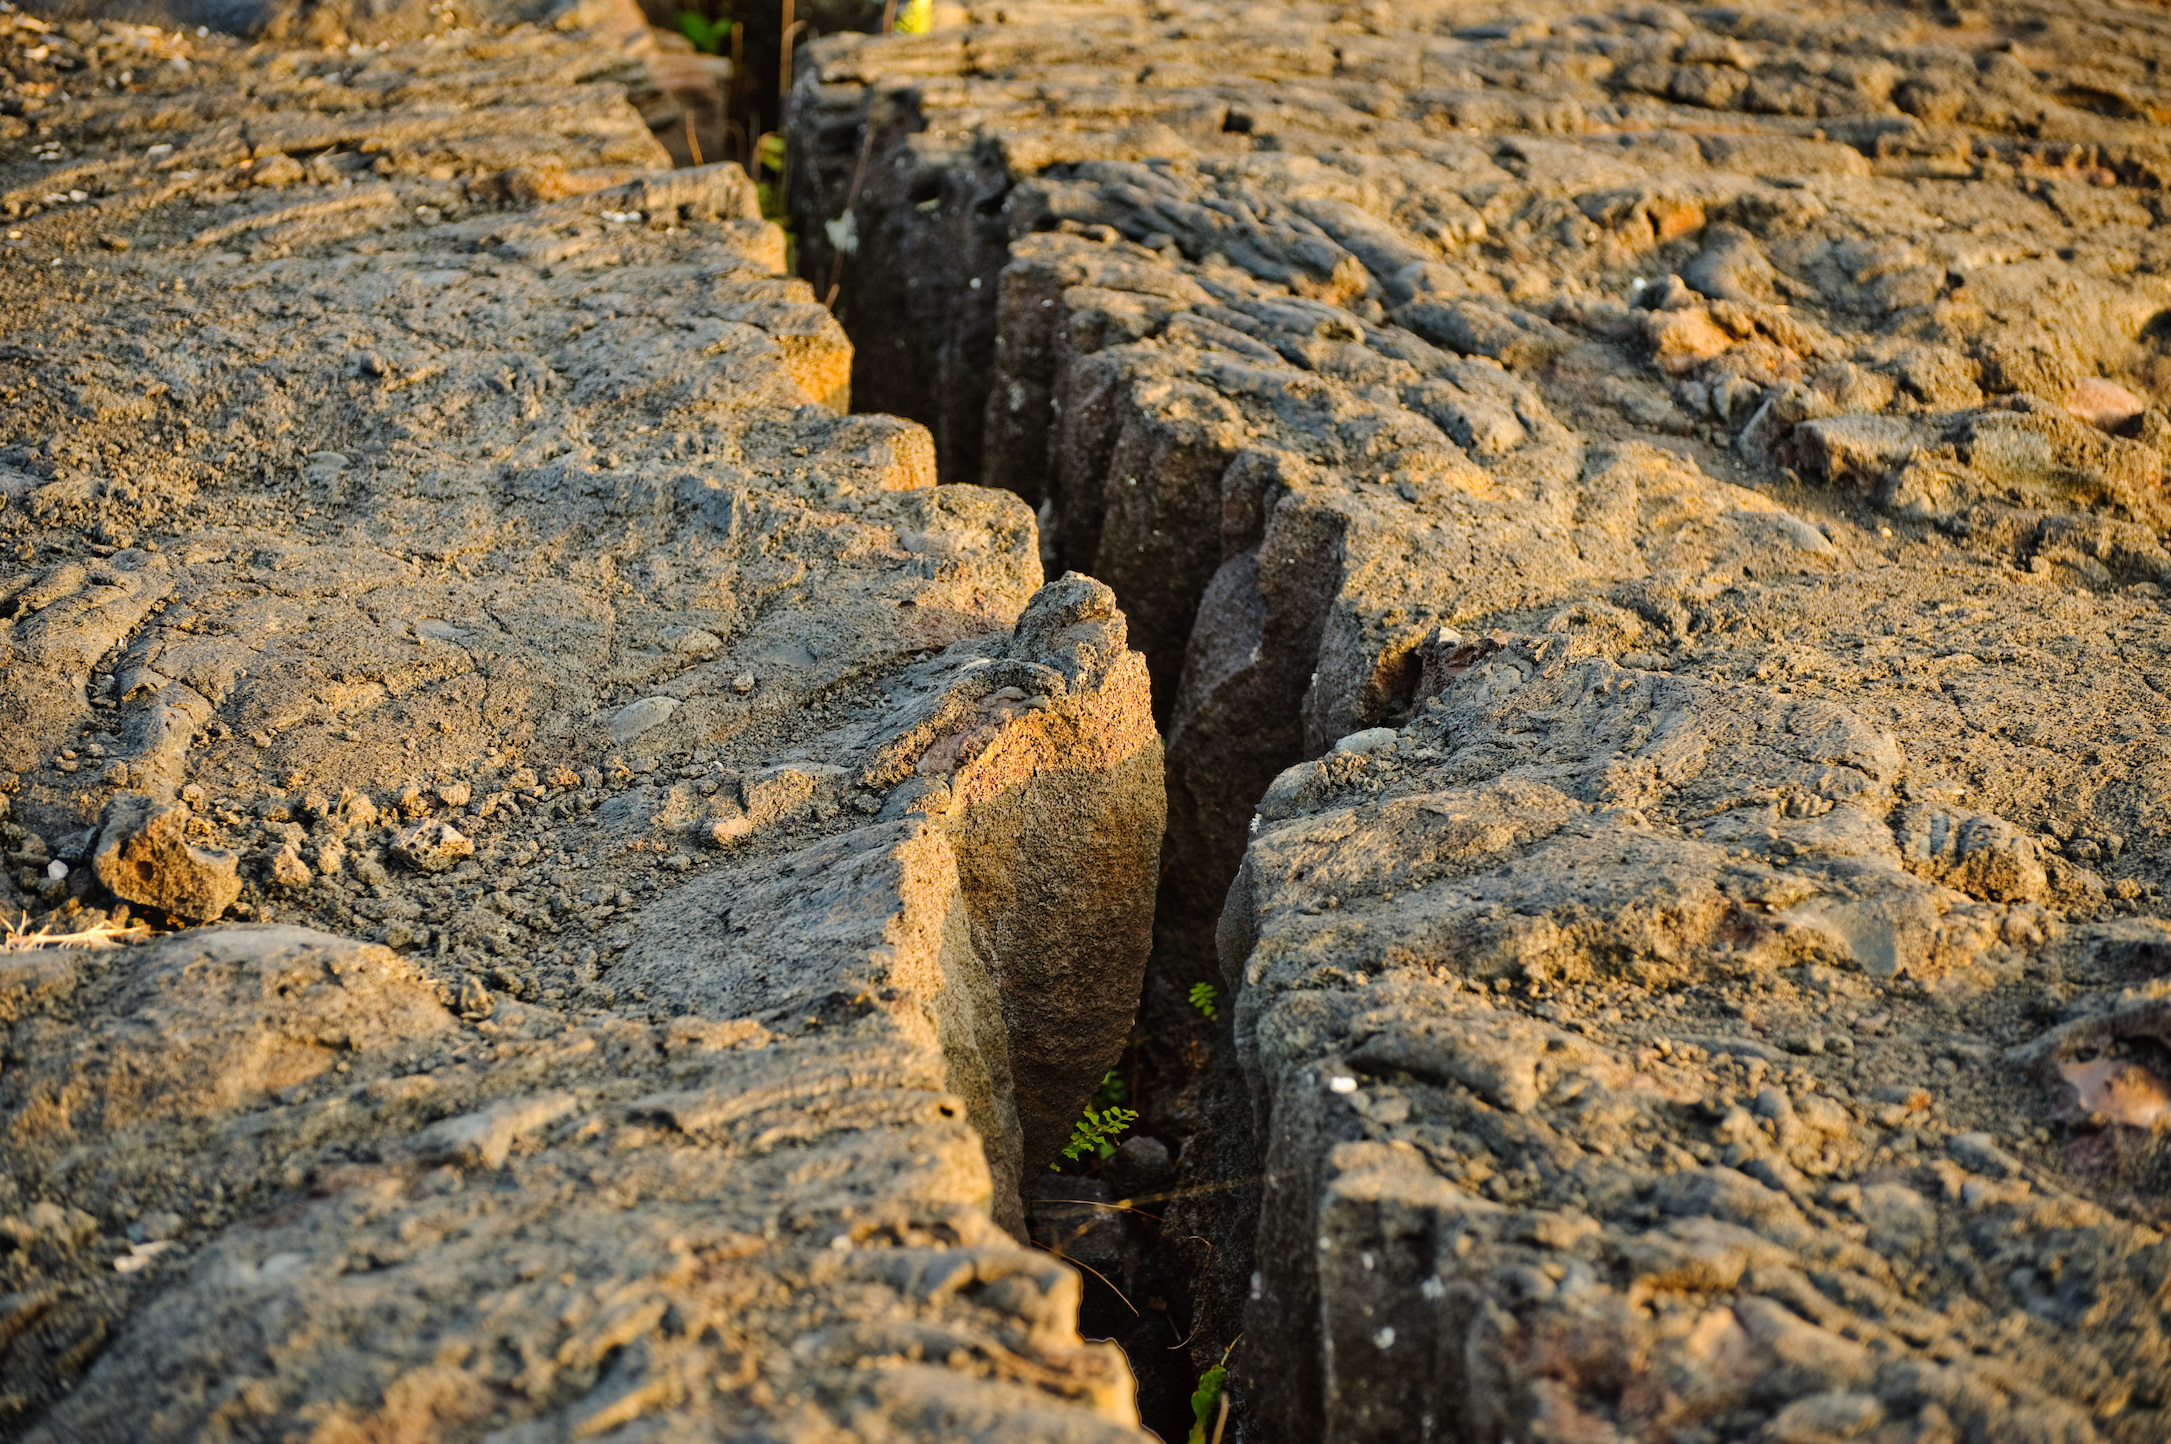 A new study reveals how strike-slip faults form in the Earth's crust, as two tectonic plates slide past one another, generating earthquakes.